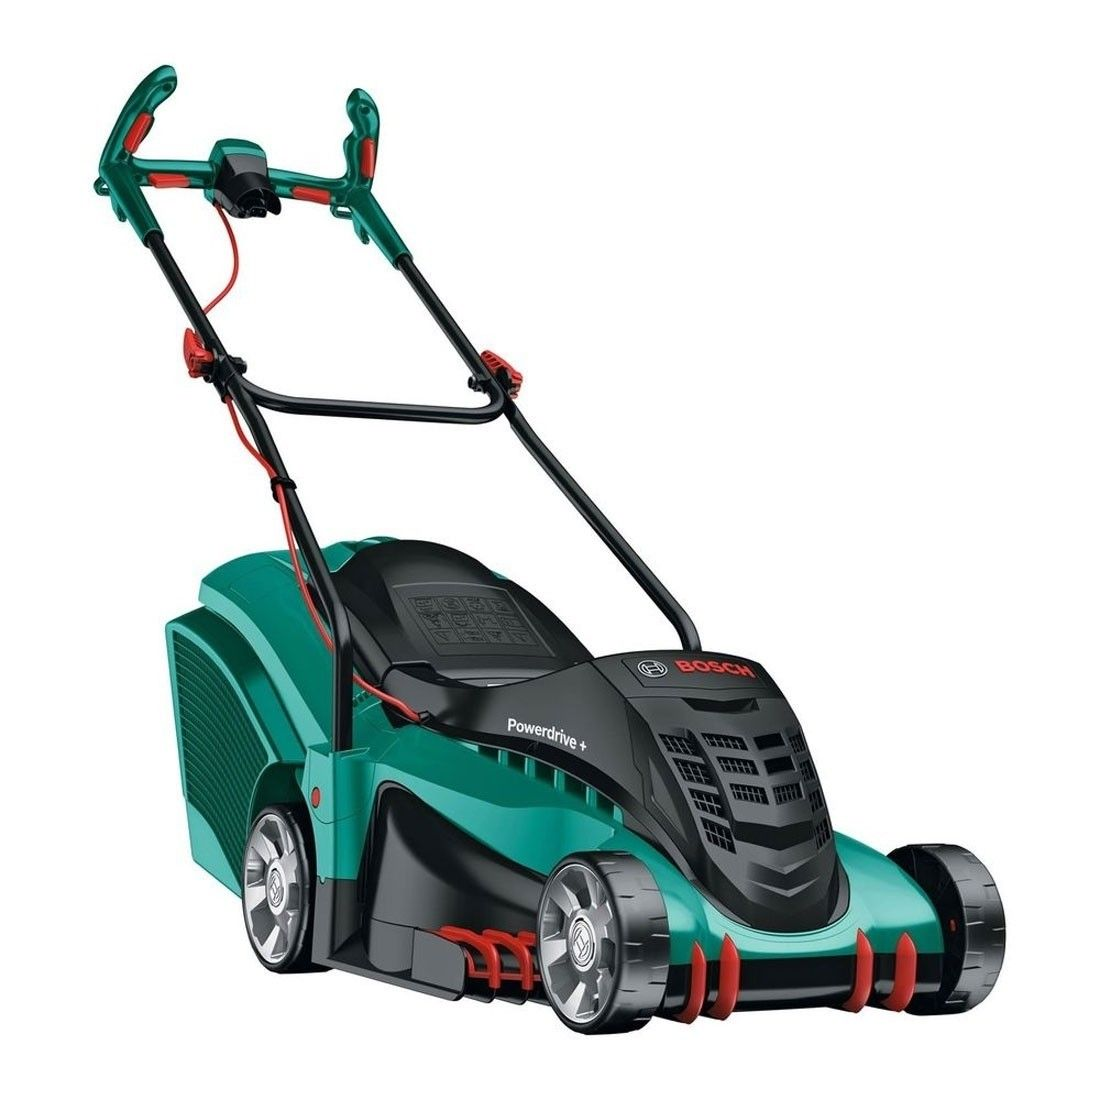 10 Best Corded Electric Lawn Mower Buying Guide Lawn Mower Rotary Mower Rotary Lawn Mower